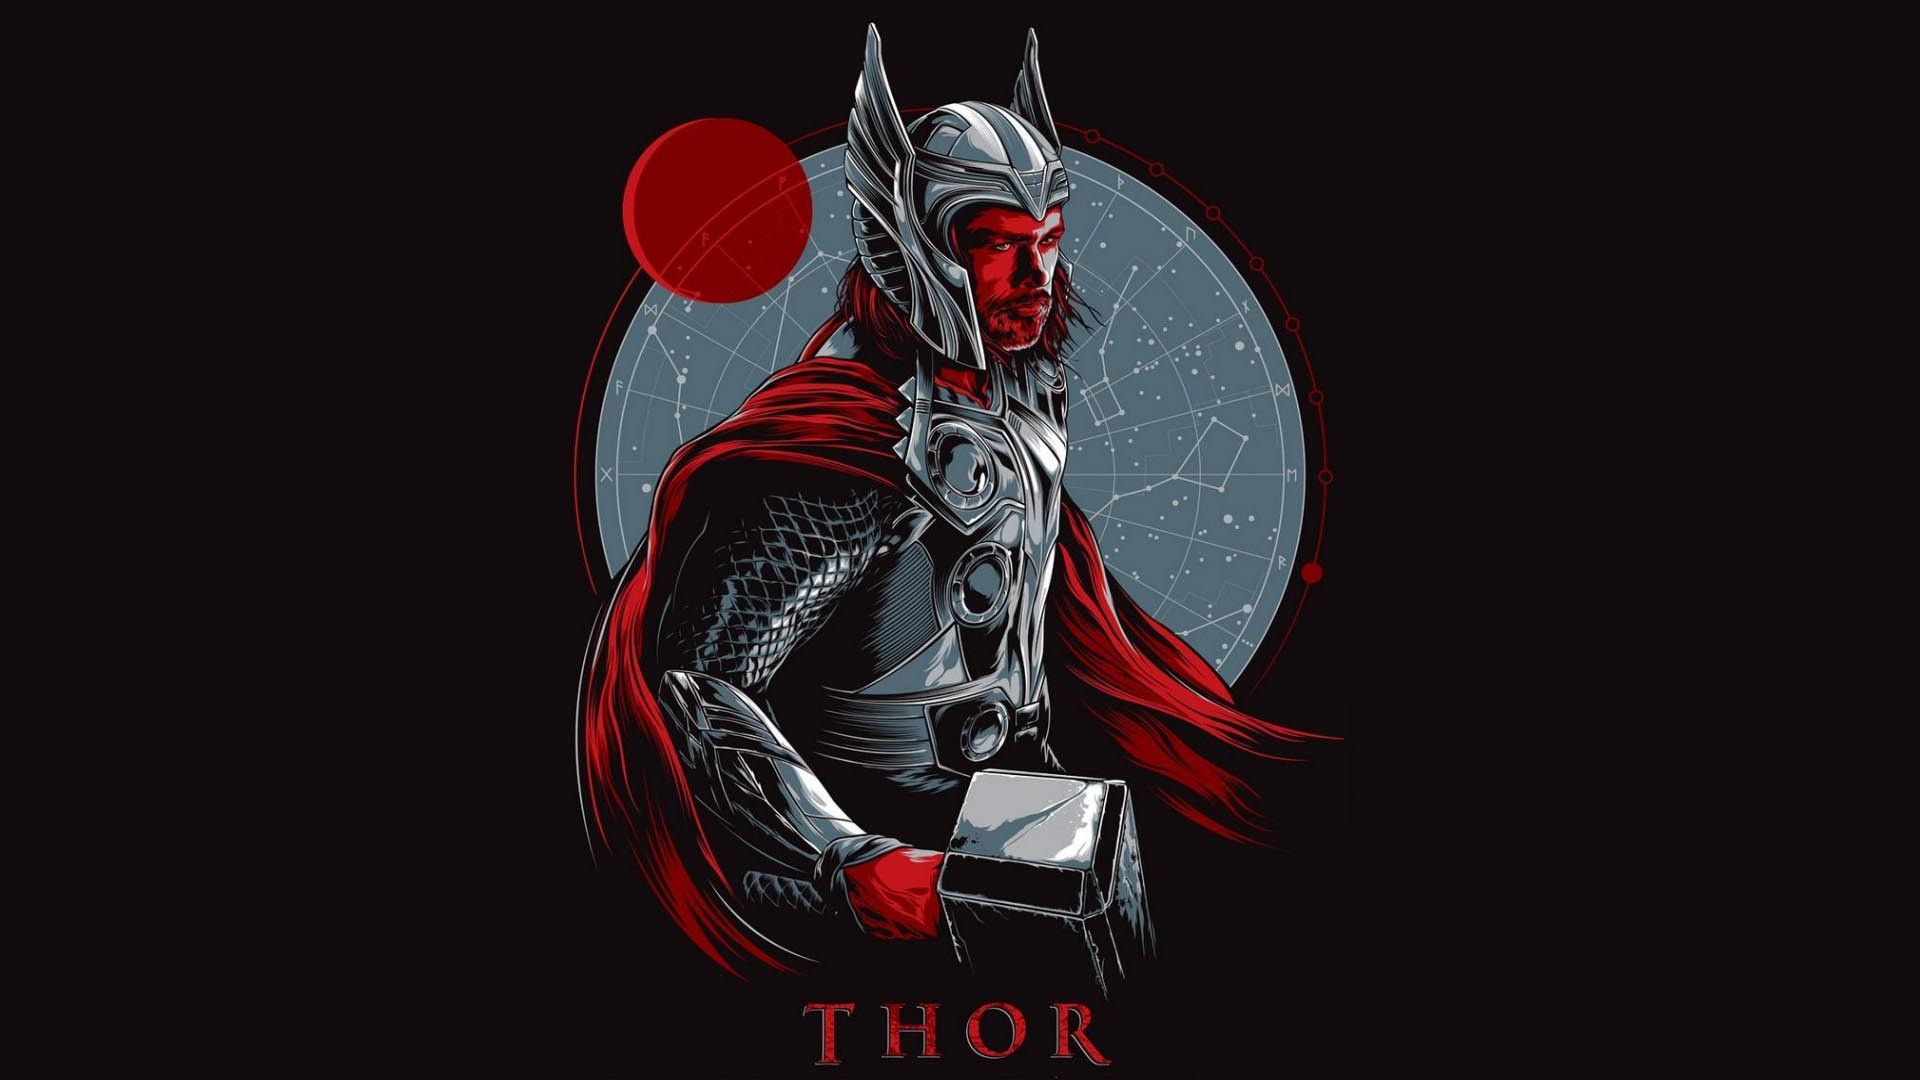 Thor Pictures Free Wallpaper: Thor Wallpaper HD (77+ Images